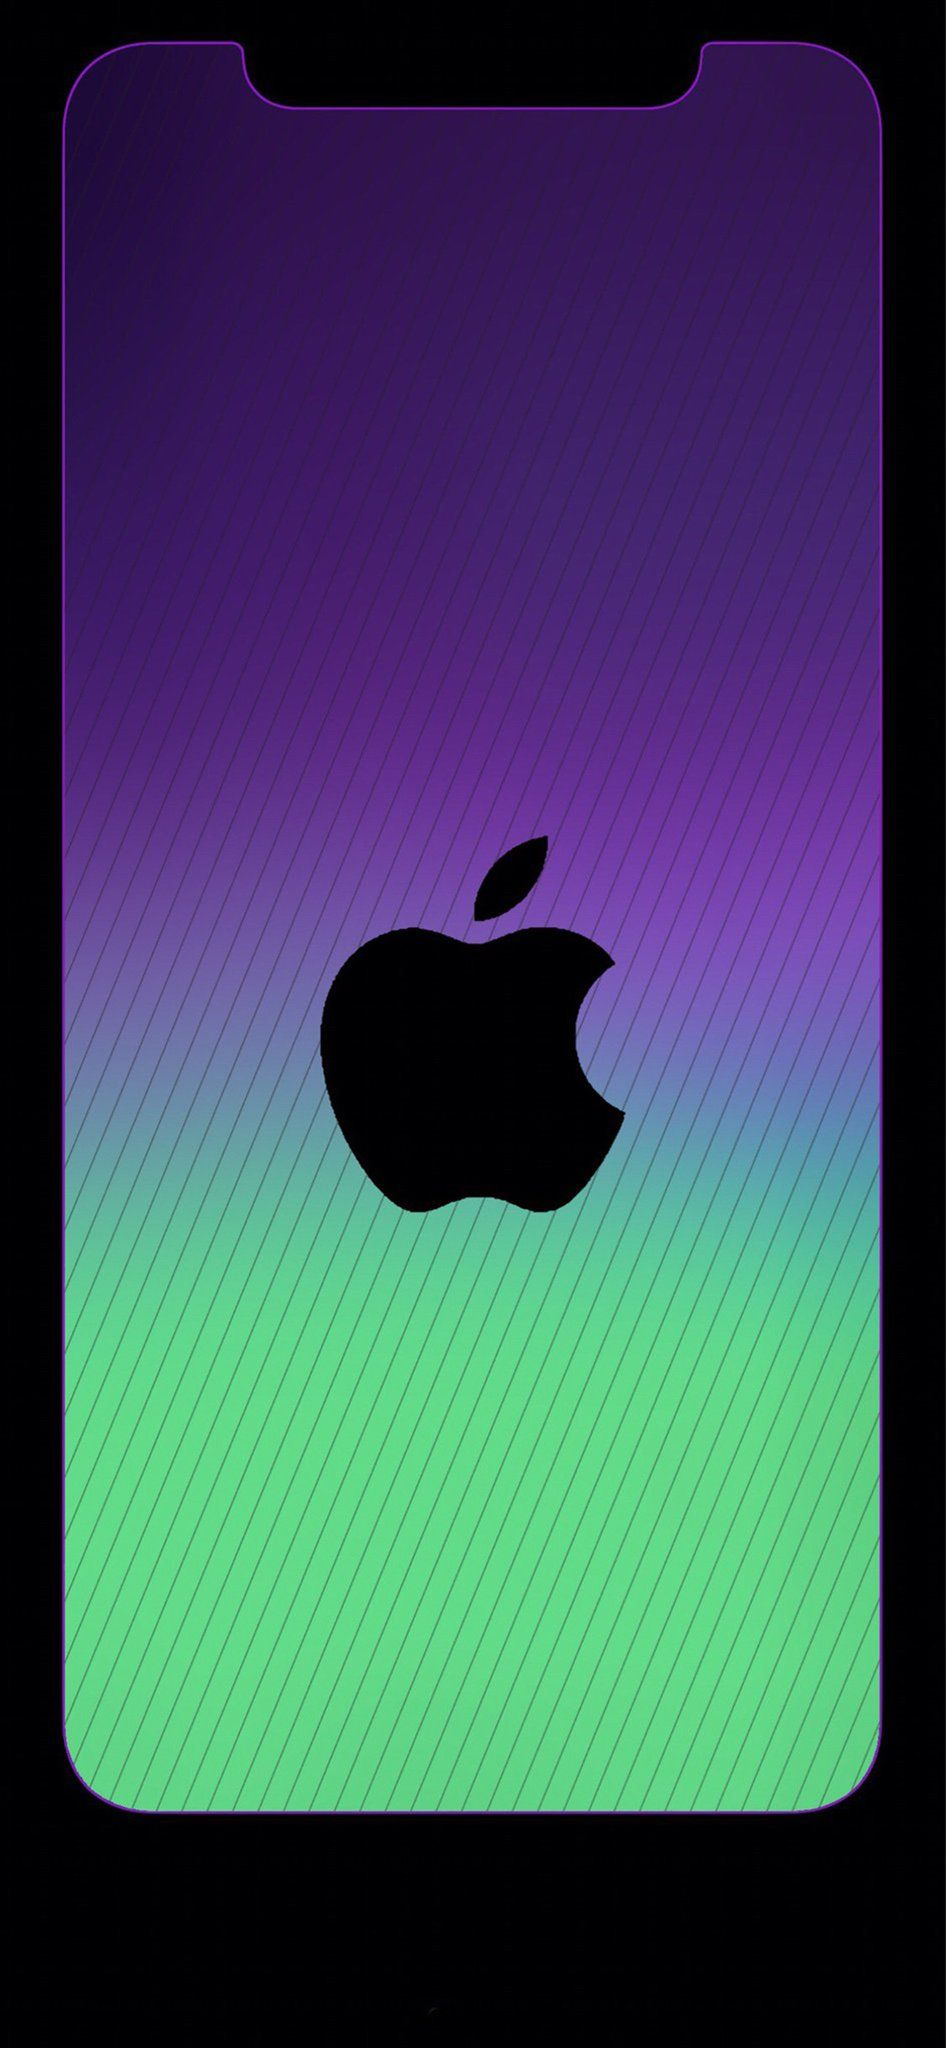 Iphonex Ios11 Ios12 Lockscreen Homescreen Backgrounds Apple Iphone Ipad Ios Apple Logo Wallpaper Iphone Background Wallpaper Apple Wallpaper Iphone